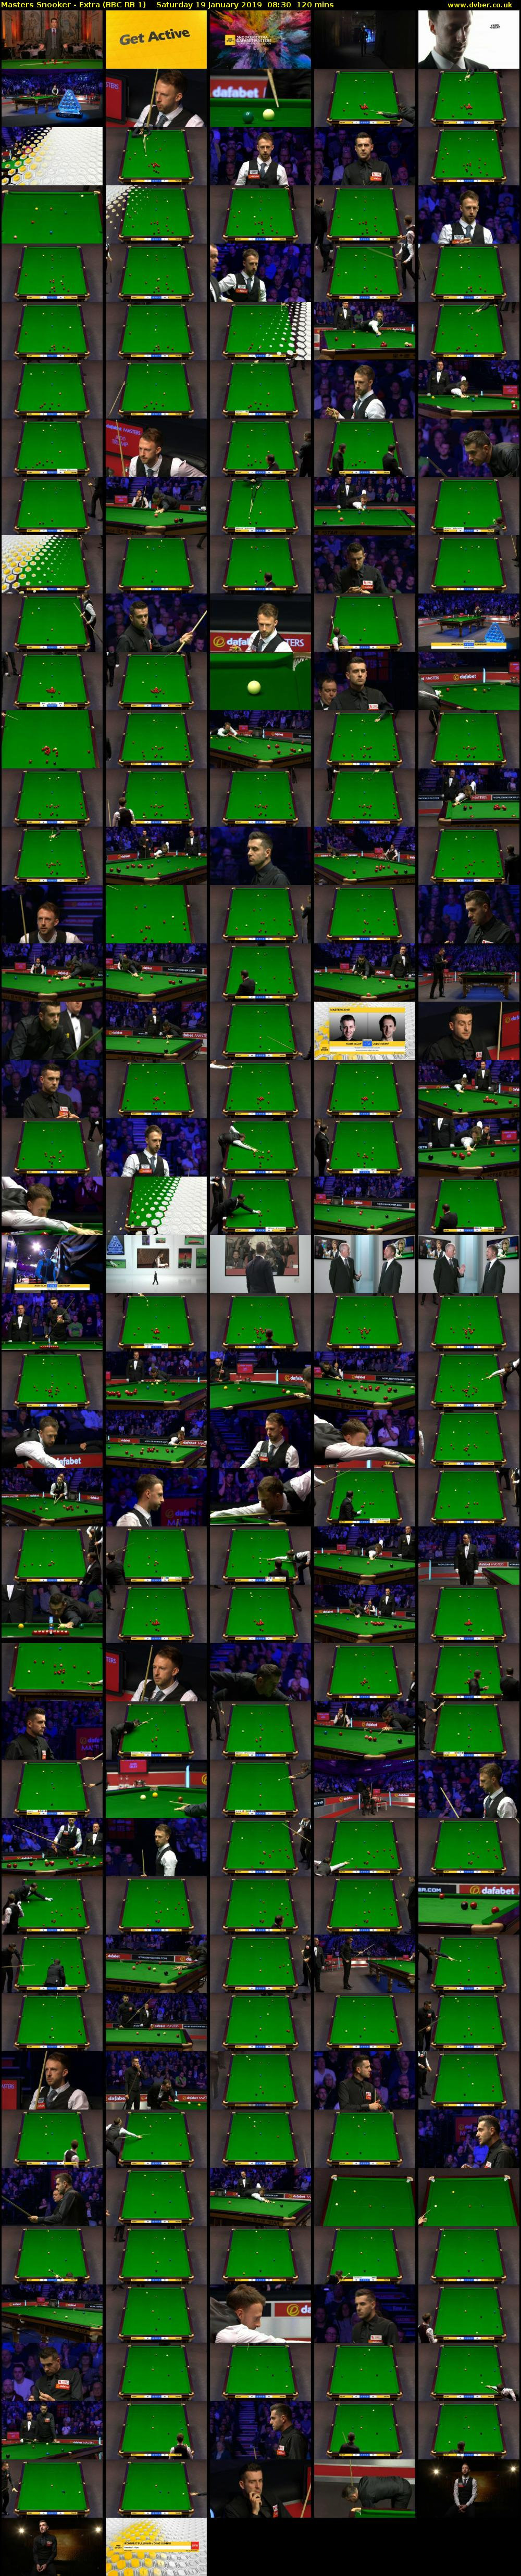 Masters Snooker - Extra (BBC RB 1) Saturday 19 January 2019 08:30 - 10:30